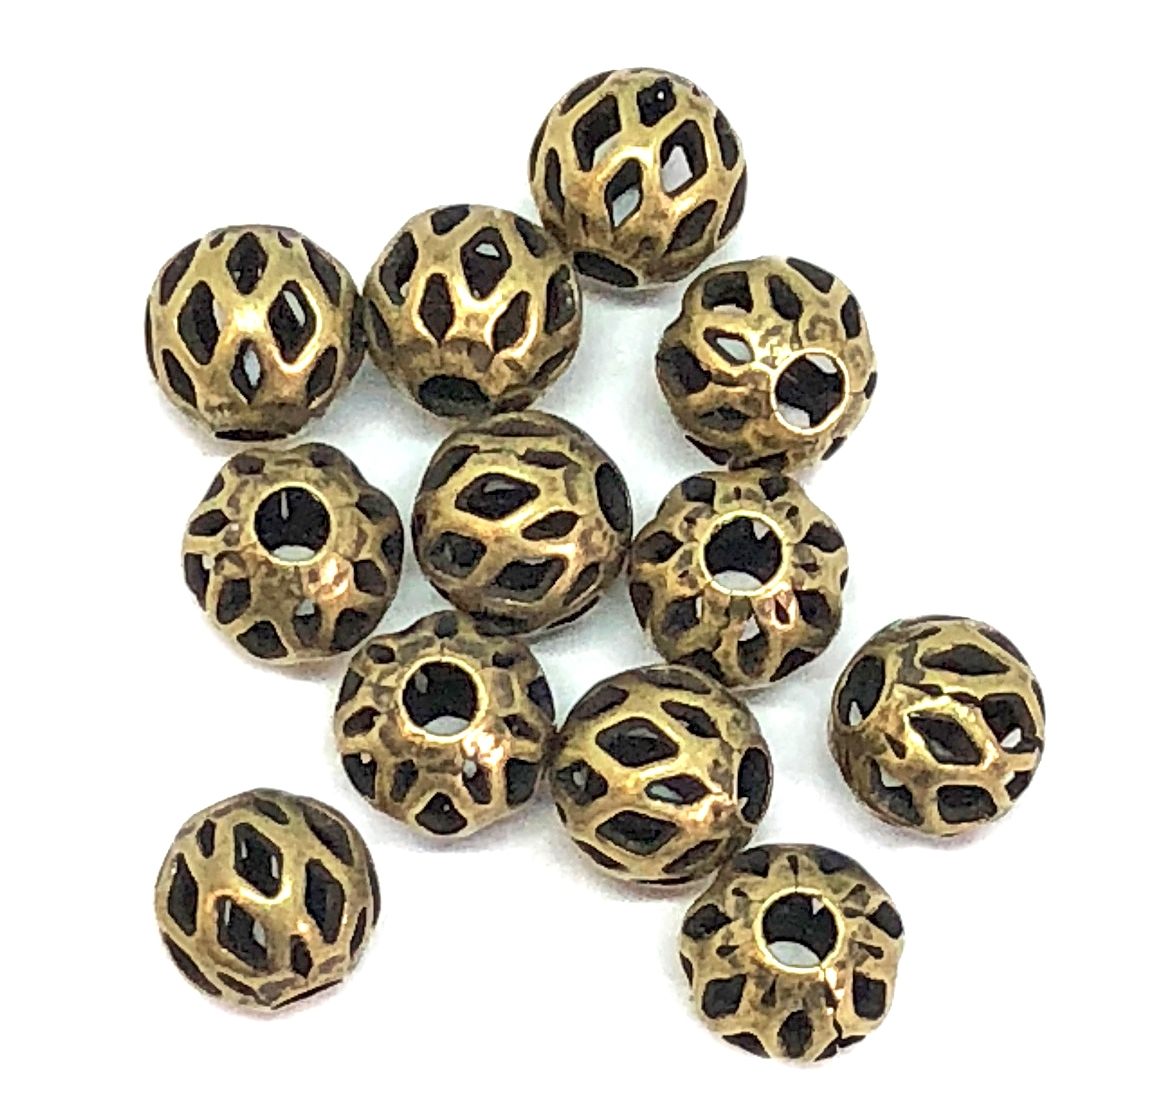 argyle style beads, round, 5mm, brass ox, brass beads, industrial beads, metal beads, beads, filigree beads, antique brass, brass ox beads, designer findings, designer beads, steampunk, vintage supplies, jewelry making, B'sue Boutiques, 05145